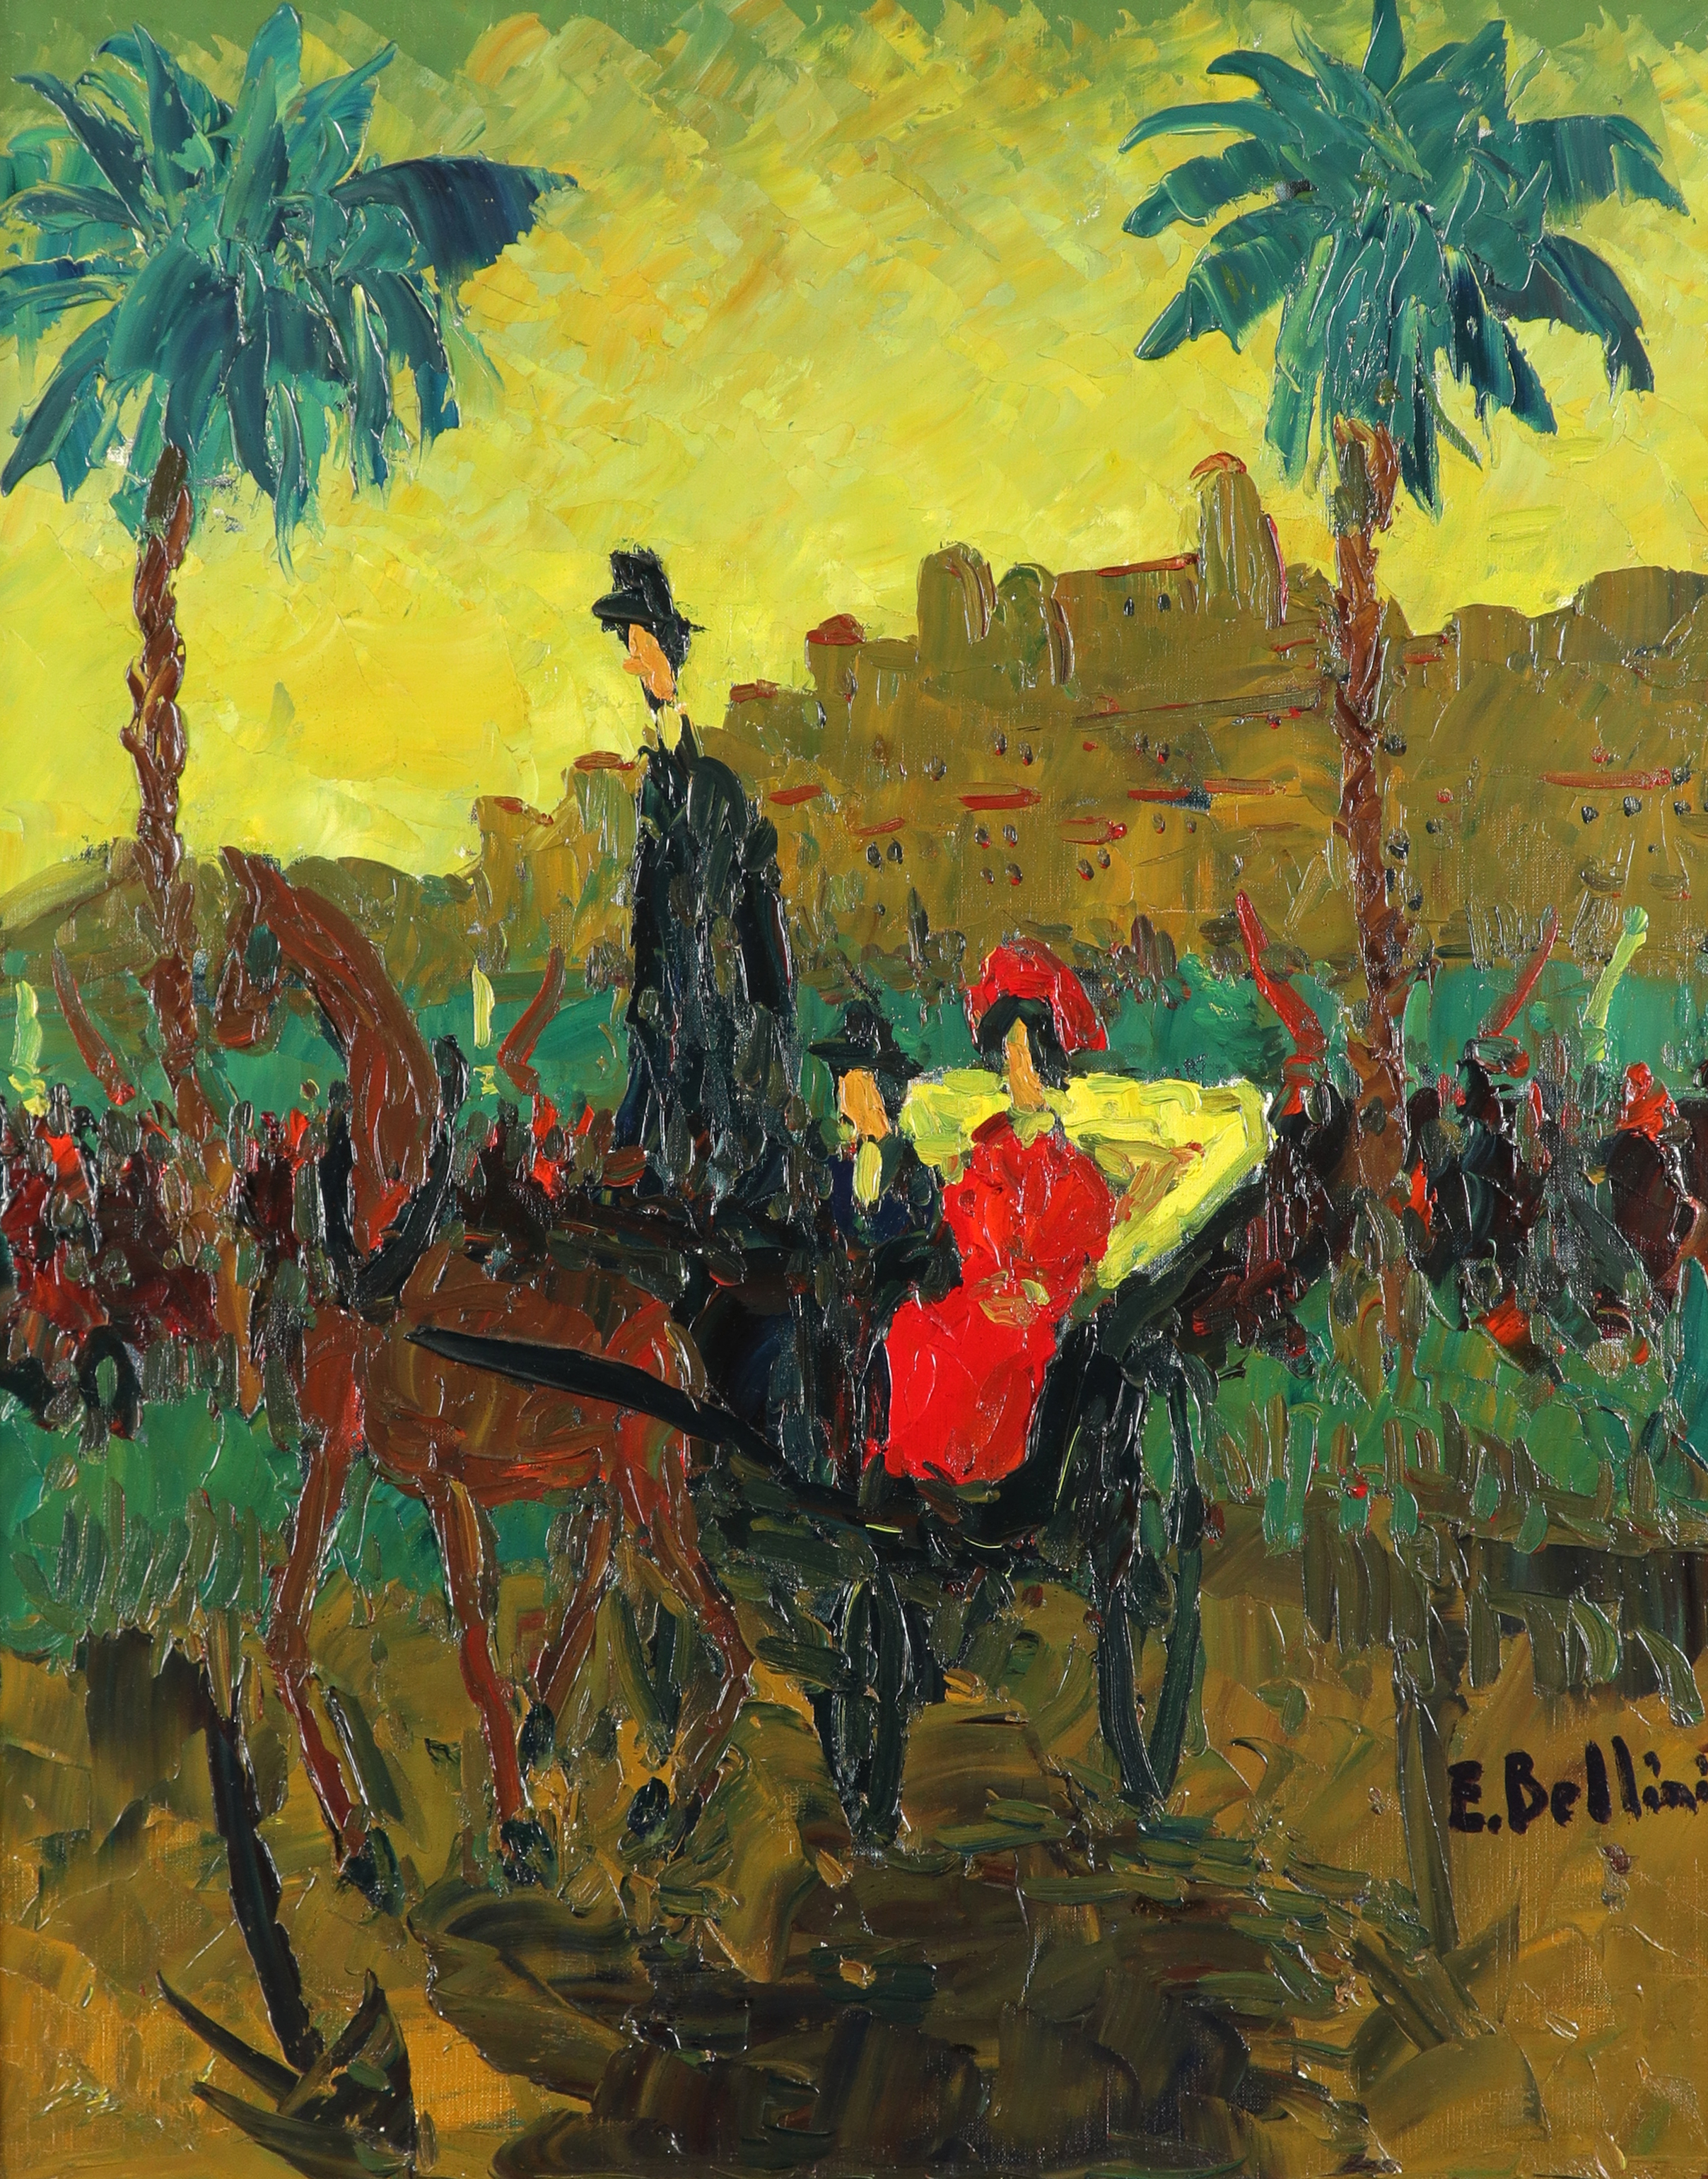 ‡Emmanuel Bellini (French 1904-1989) Calèche à Cannes Signed E.Bellini (lower right), and signed and